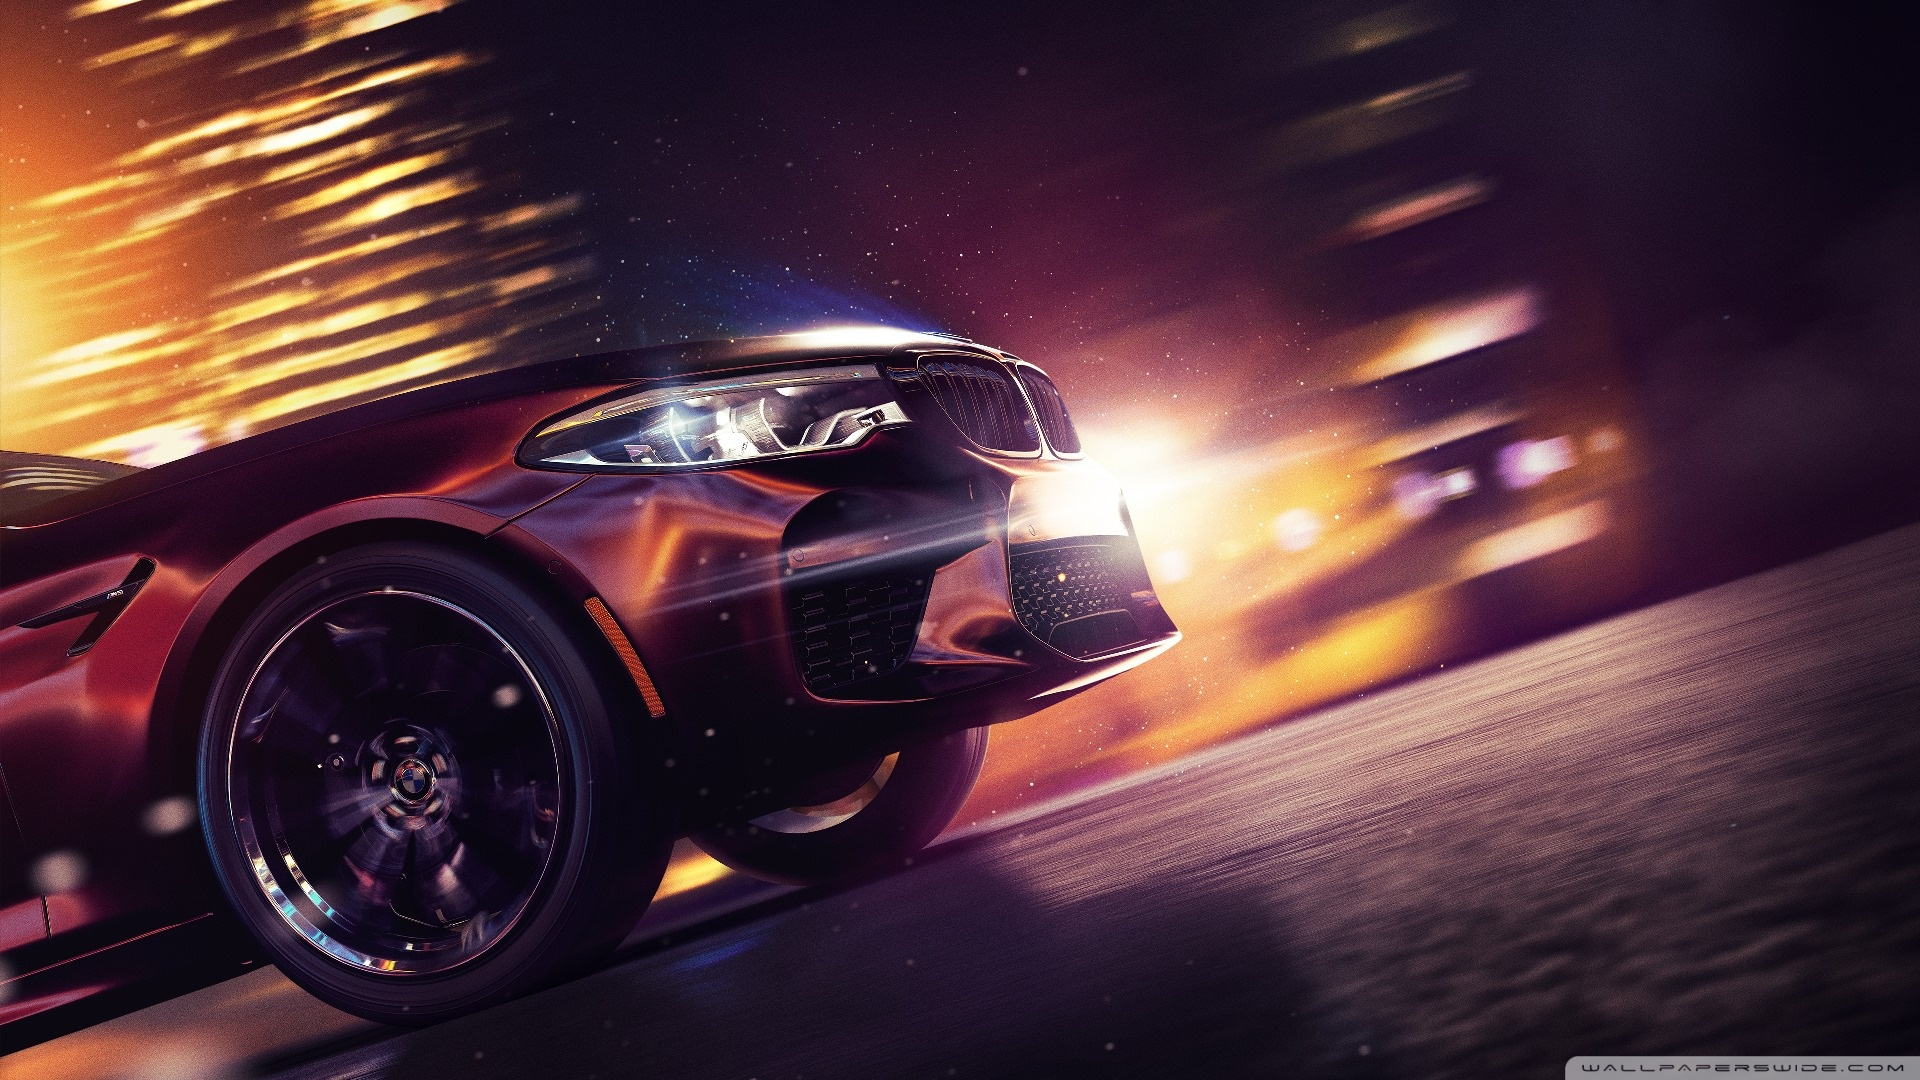 Free Download Need For Speed Payback 4k Hd Desktop Wallpaper For